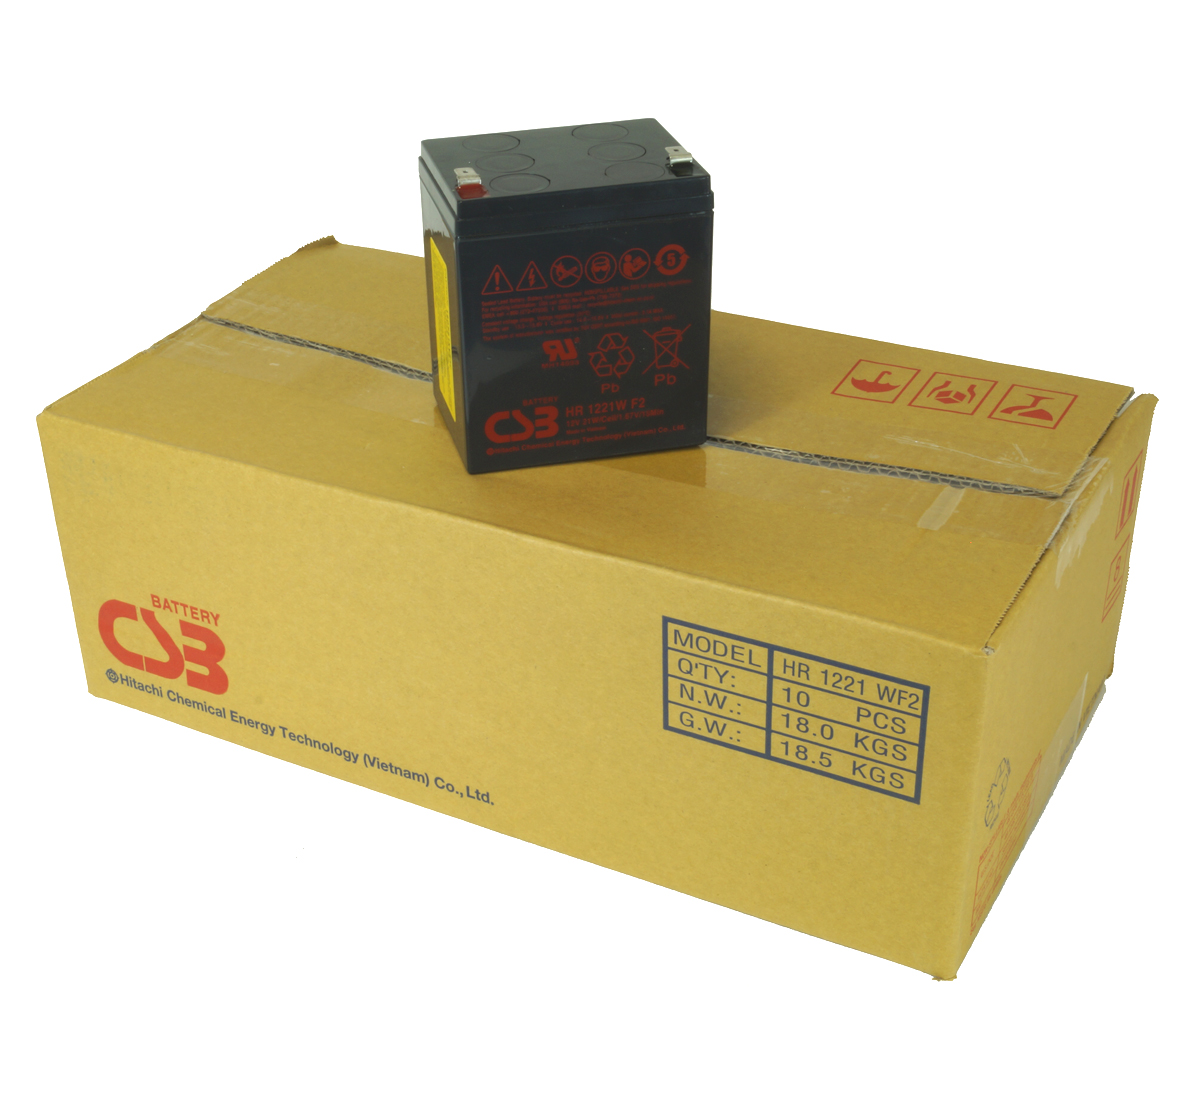 MDS134 UPS Battery Kit - Replaces APC RBC134